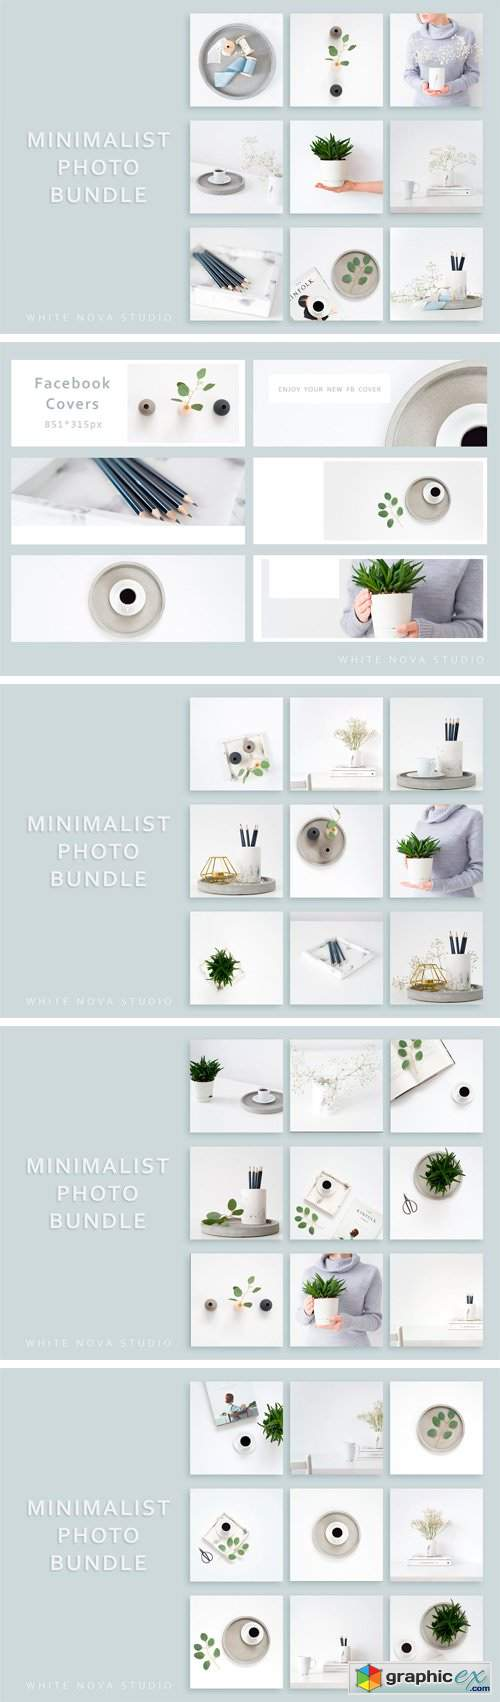 Minimalist Instagram Photo Bundle